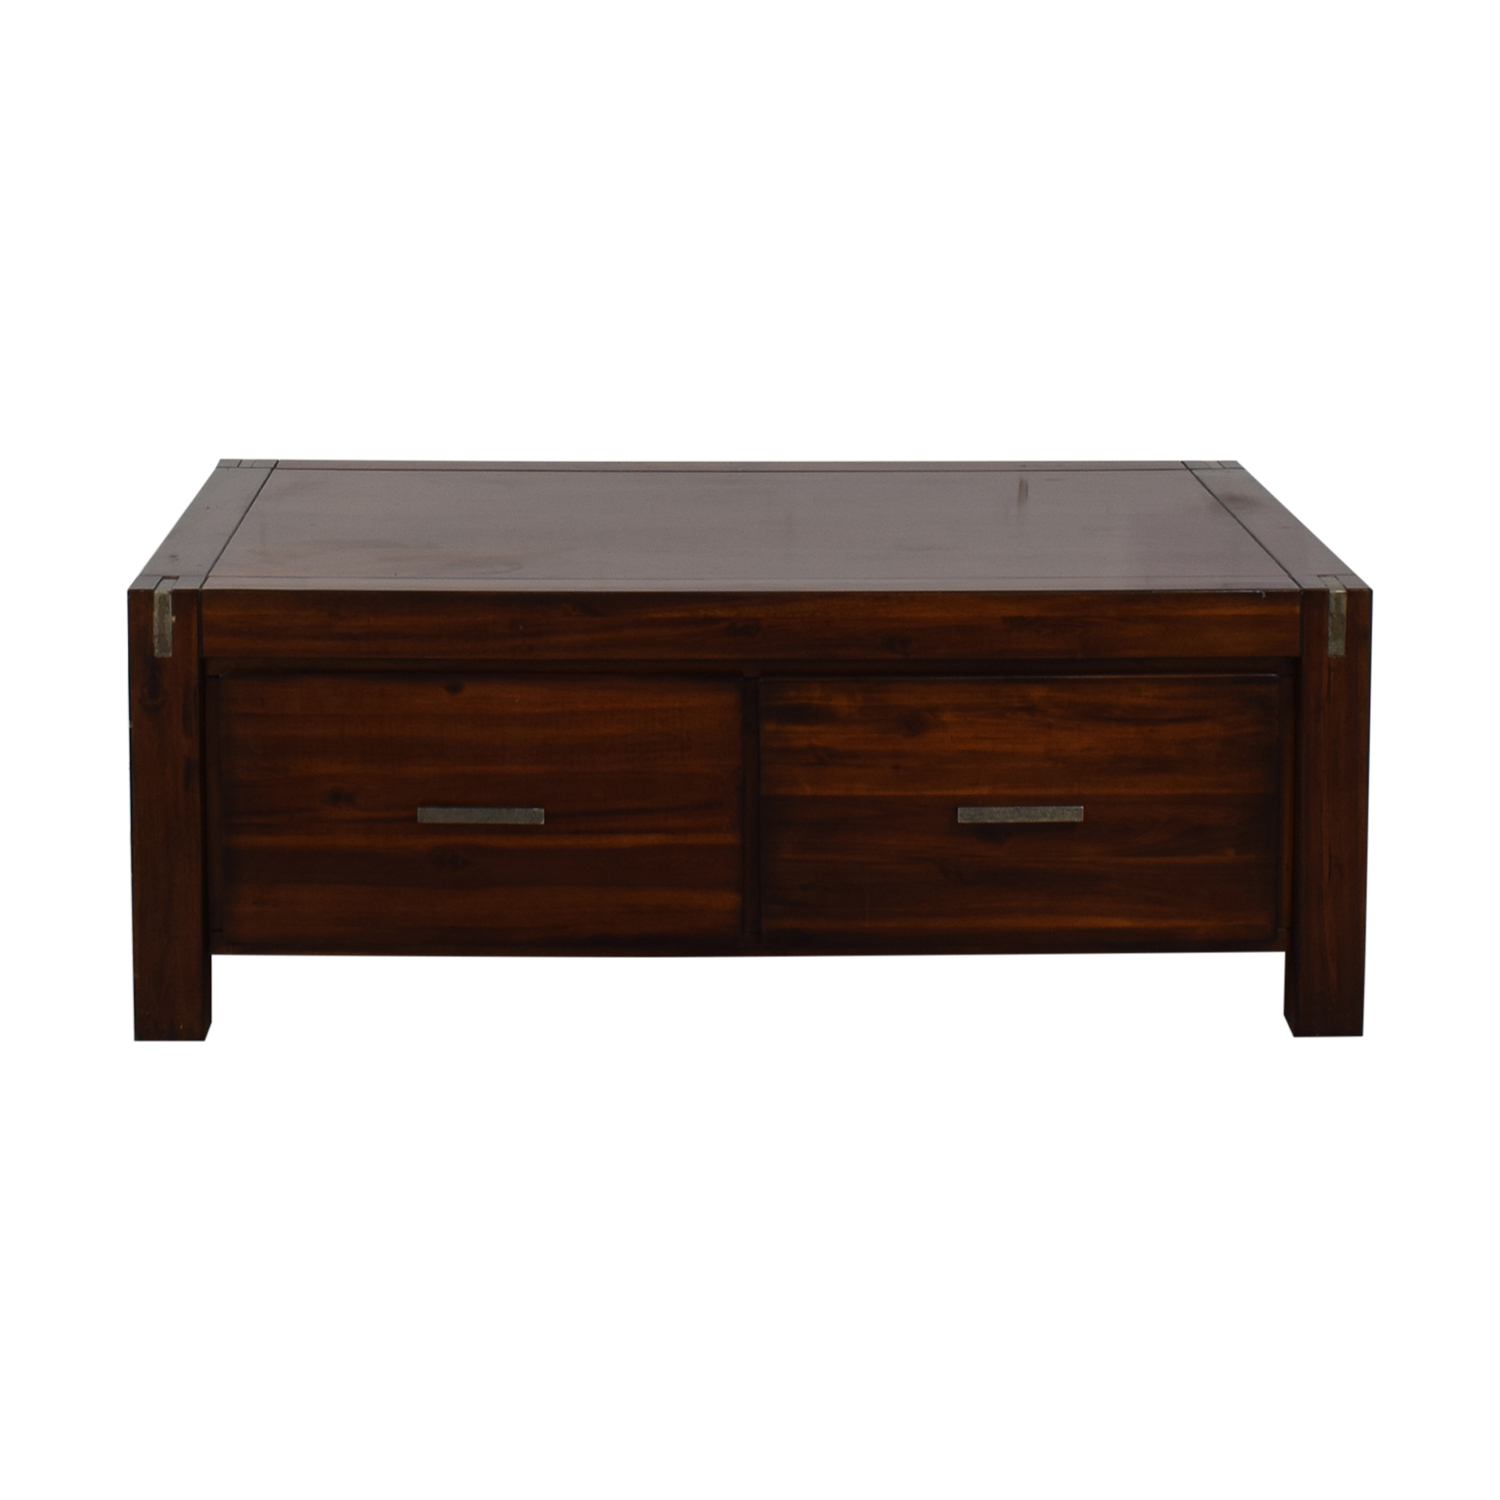 buy Ethan Allan Wood Coffee Table with Storage Ethan Allan Coffee Tables